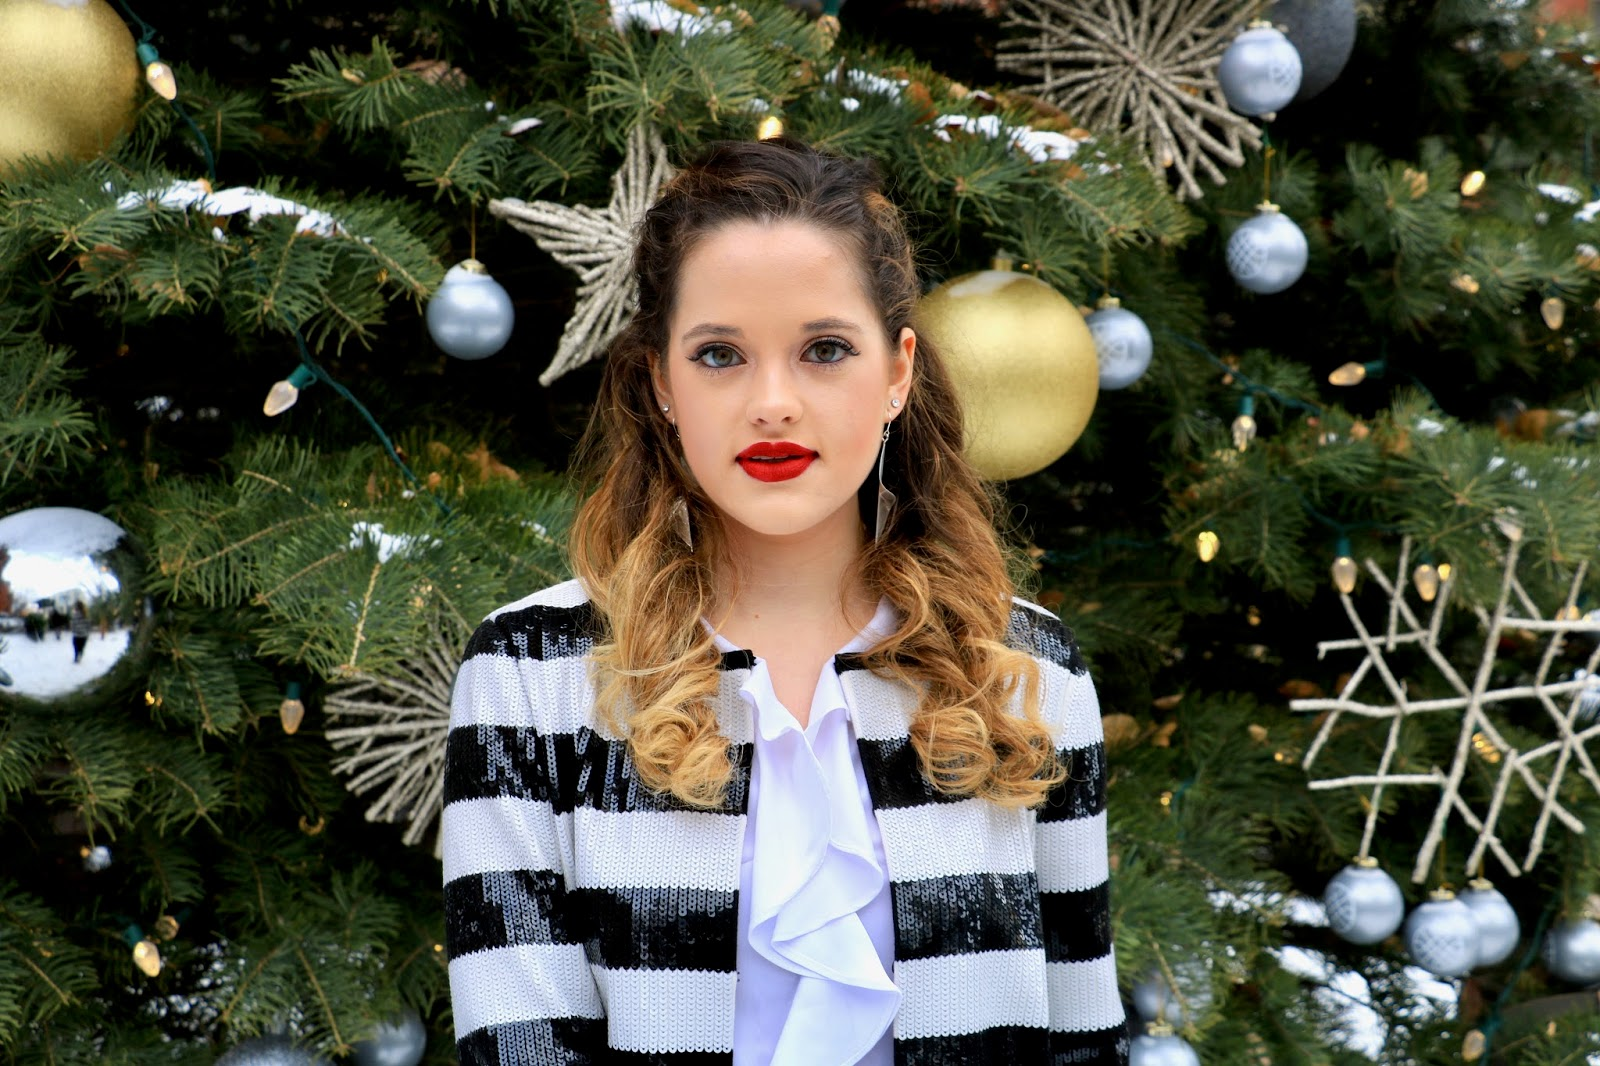 Nyc fashion blogger Kathleen Harper at the High Line Hotel Christmas tree